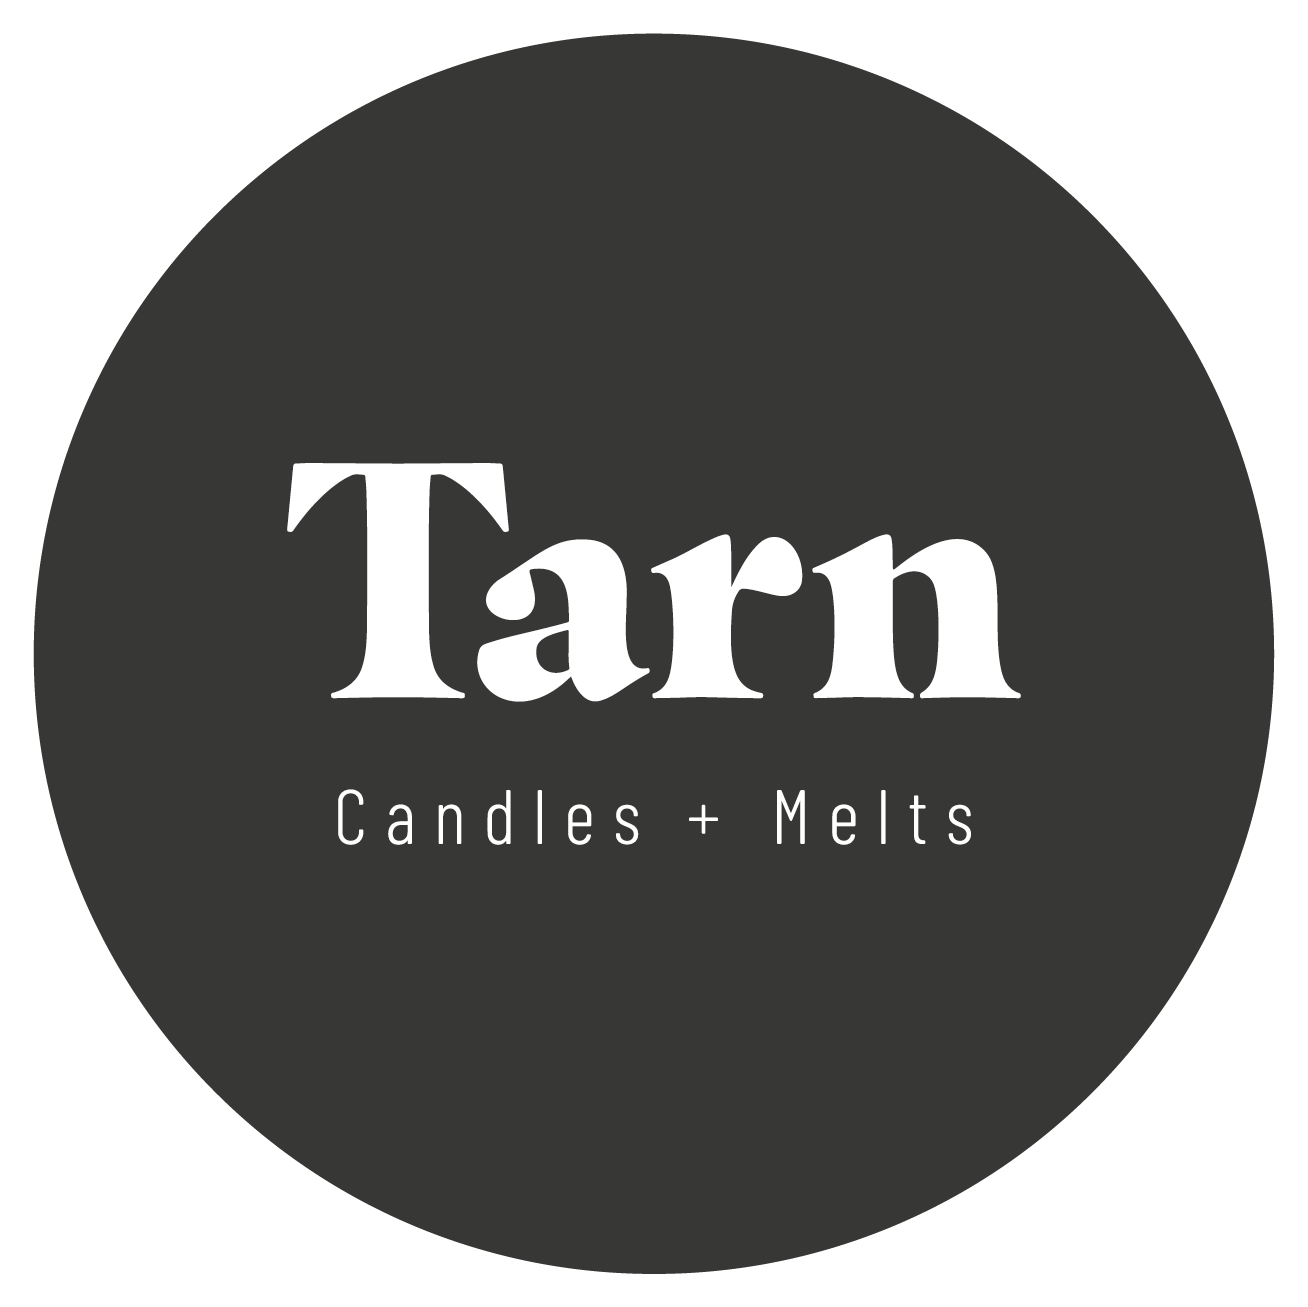 Tarn Candles + Melts